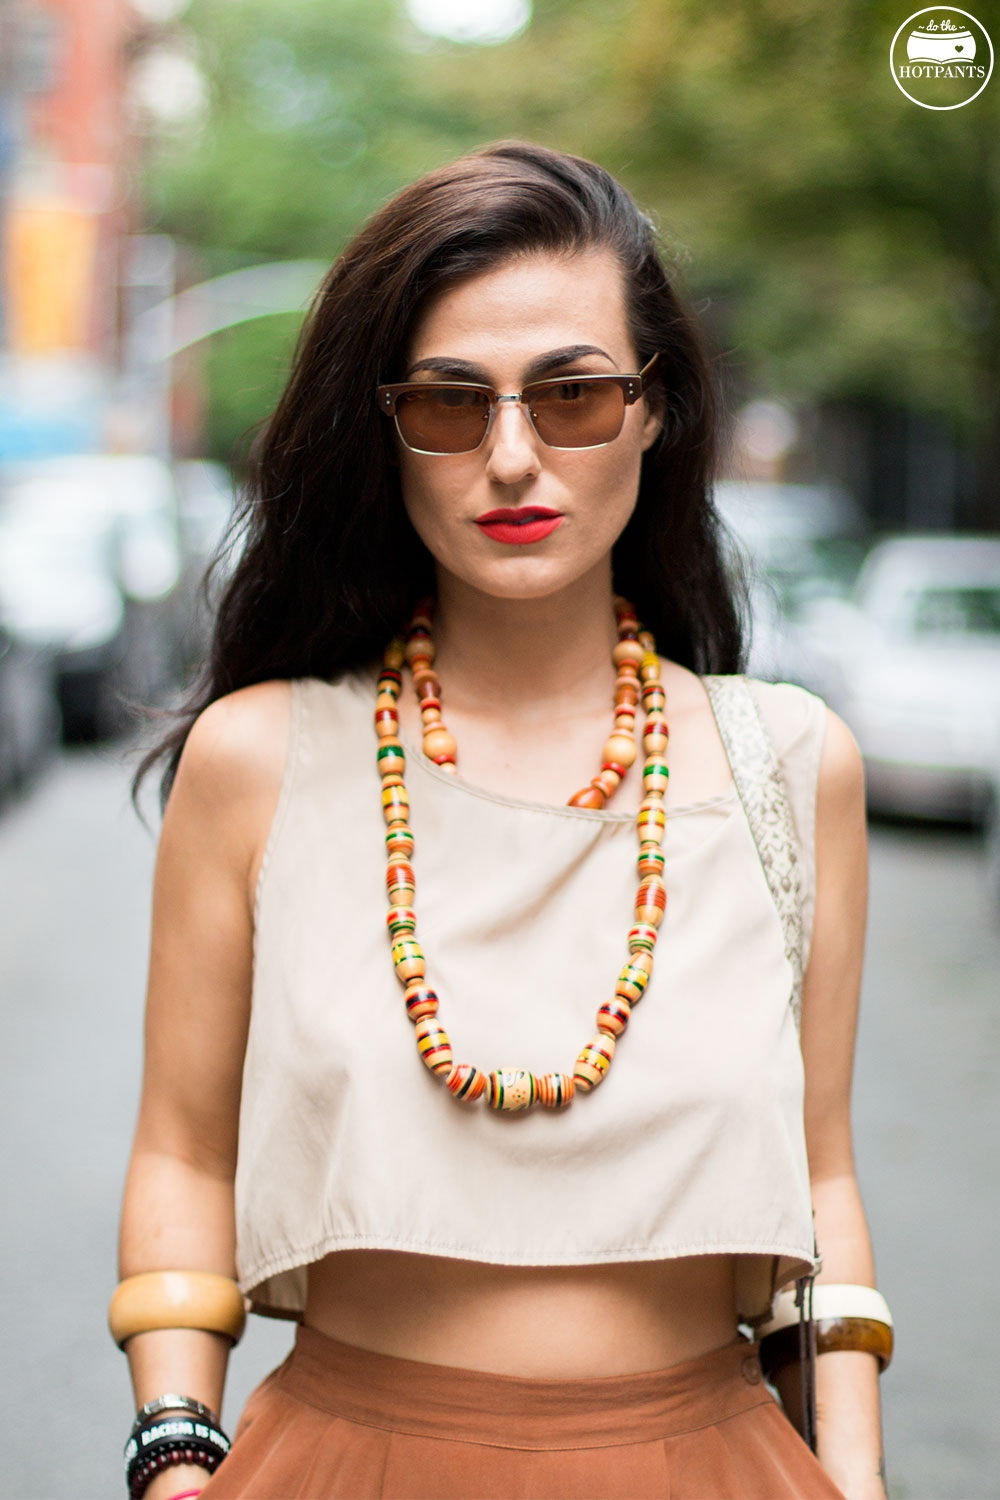 Do The Hotpants Dana Suchow Dharma Sunglasses Summer New York City Outfit Streetstyle Neutral Nude Fashion IMG_9729